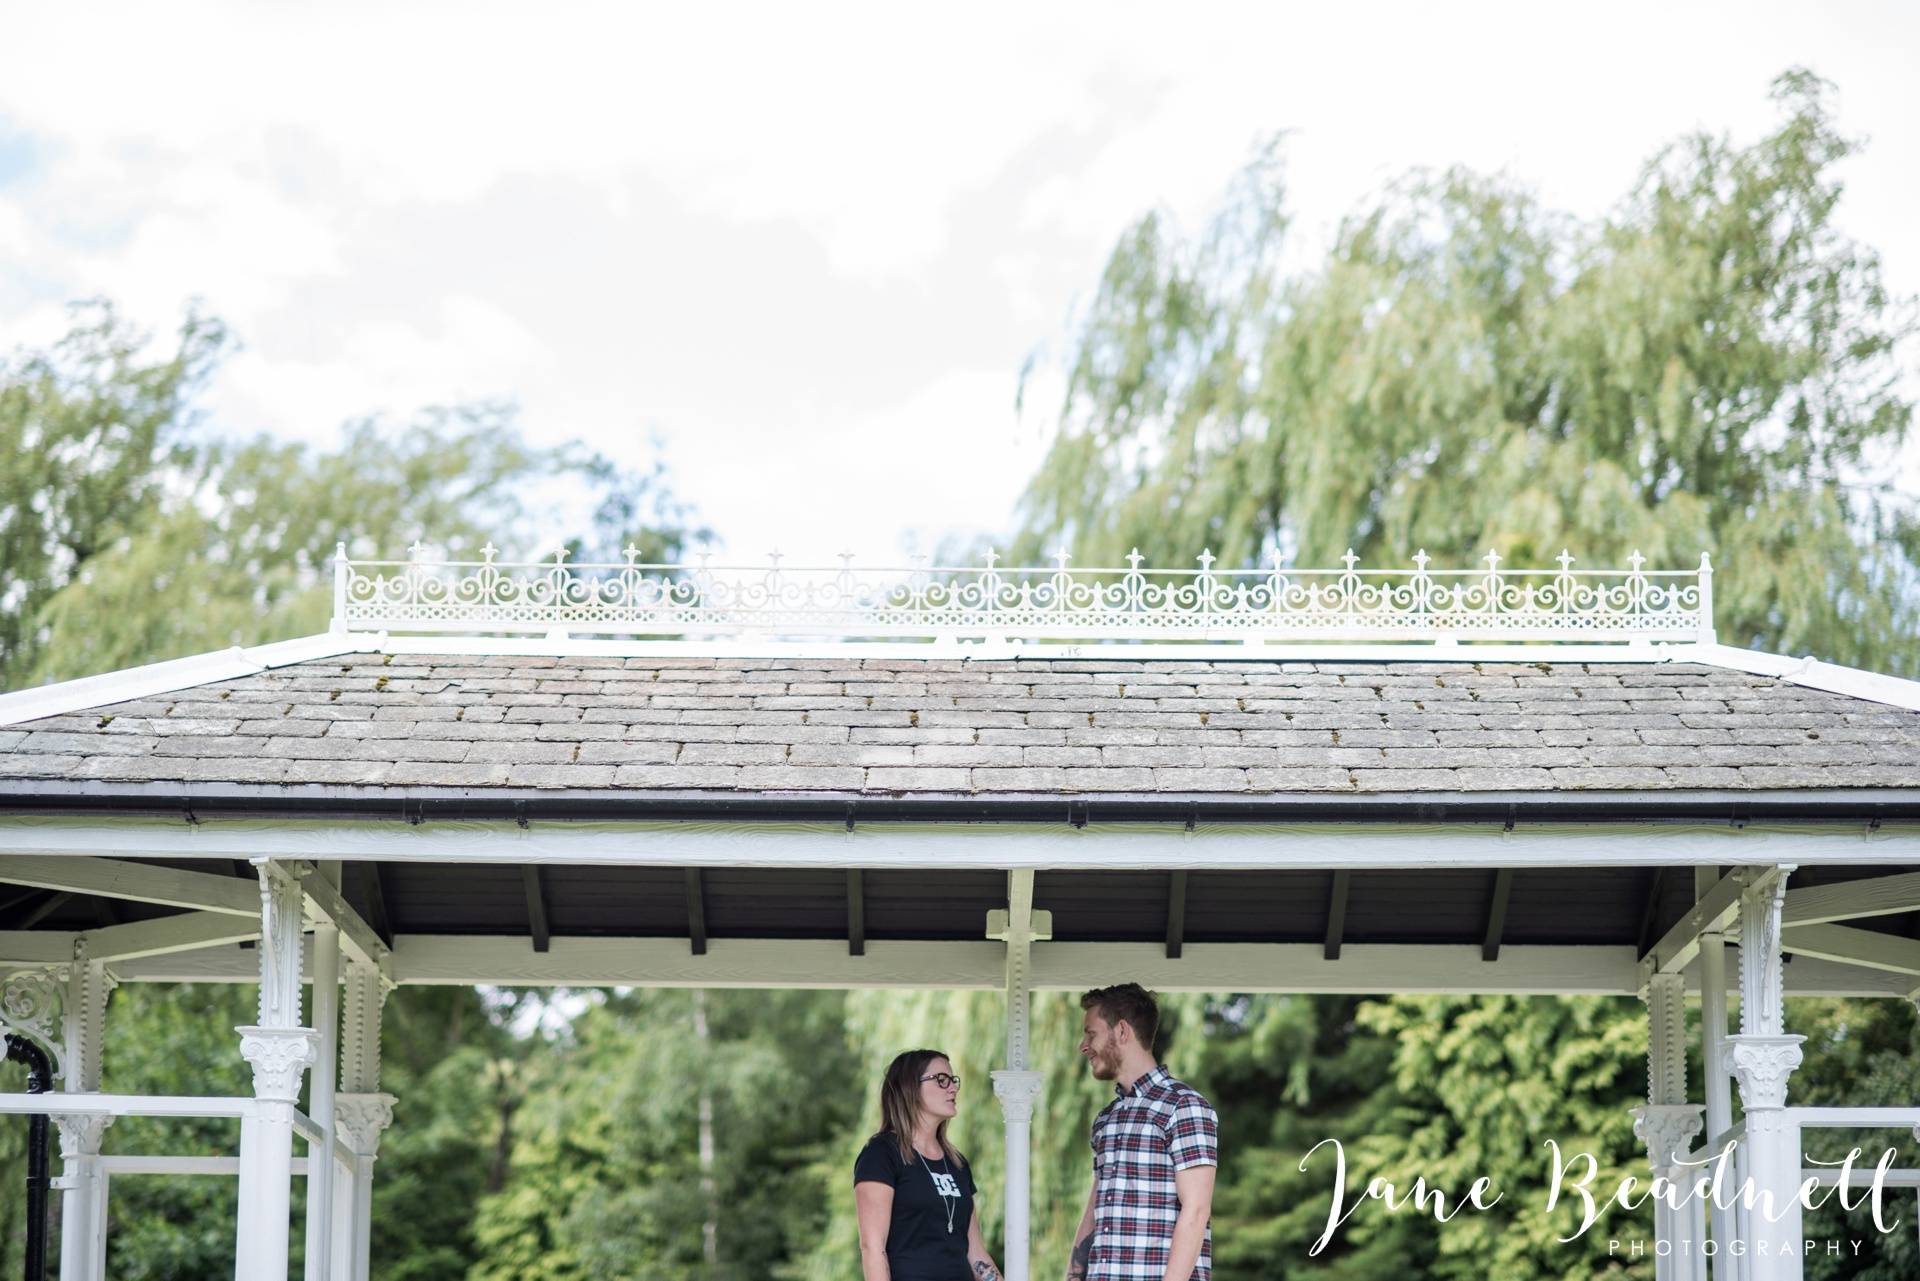 The Sun Pavilion wedding photography Jane Beadnell engagement photography_0010